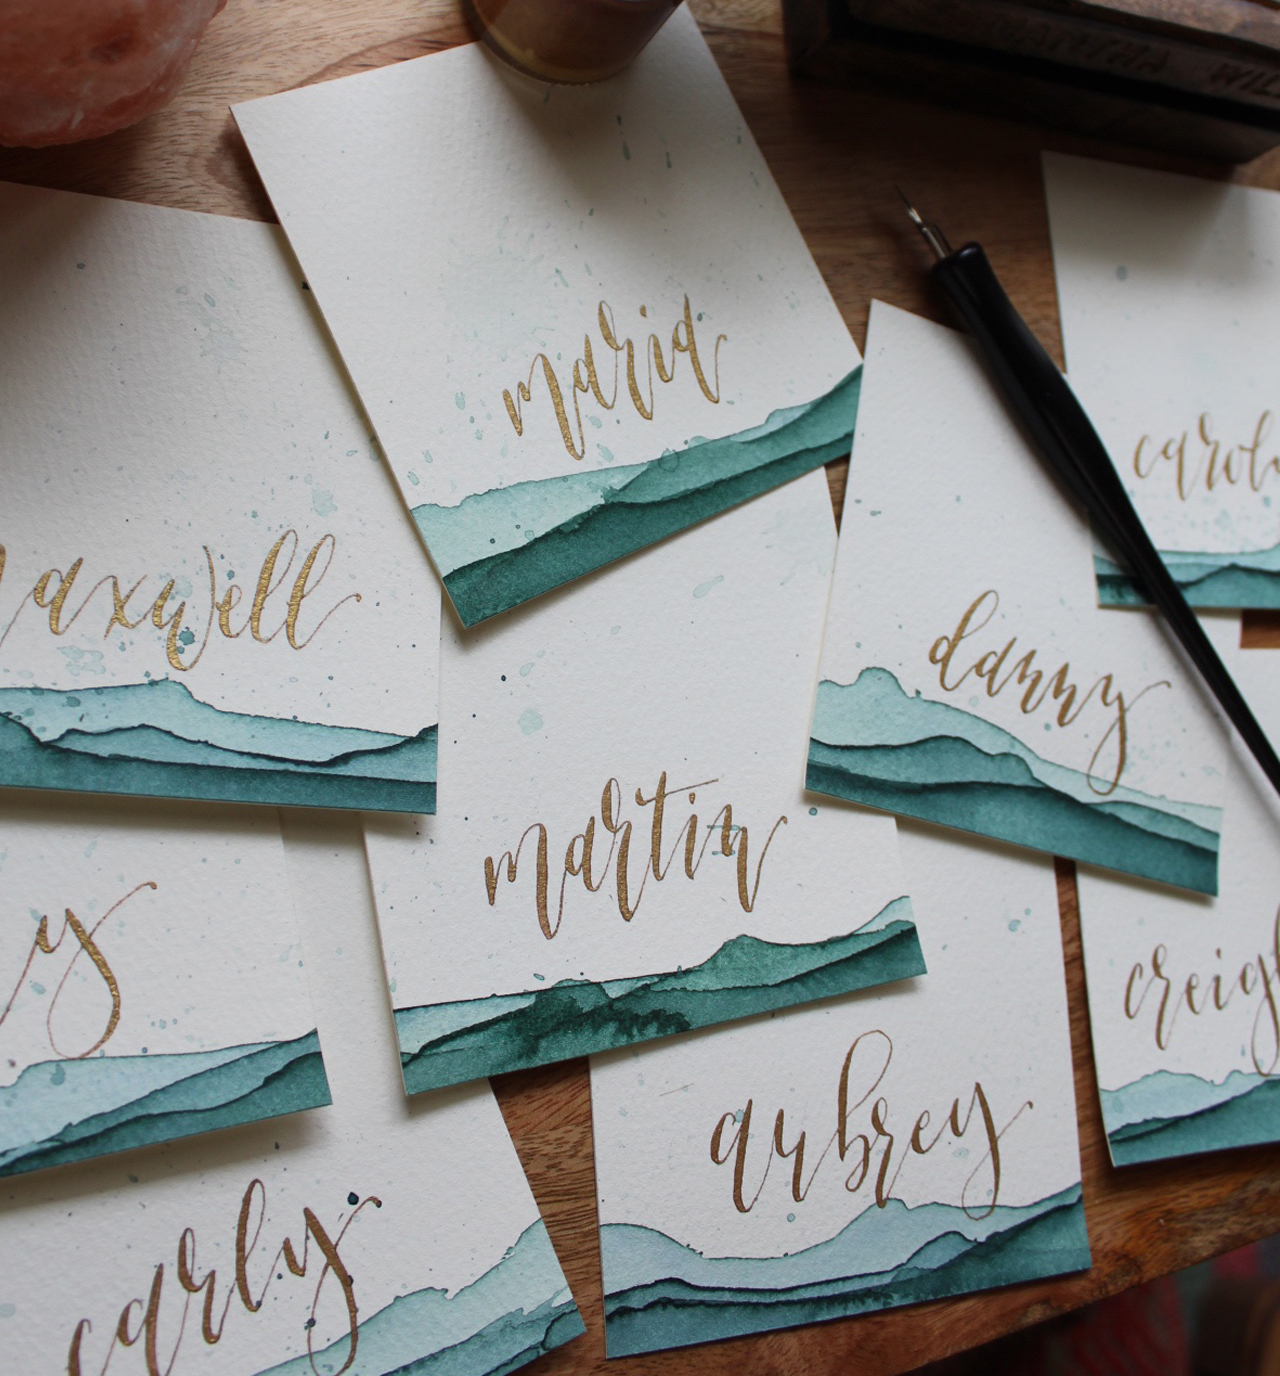 toby+brenna   JUNE 2018  Watercolor place cards and table signage.  CALLIGRAPHY: SAMI SHIROMA  PHOTOGRAPHER: SAMI SHIROMA  VENUE:  ACE HOTEL & SWIM CLUB